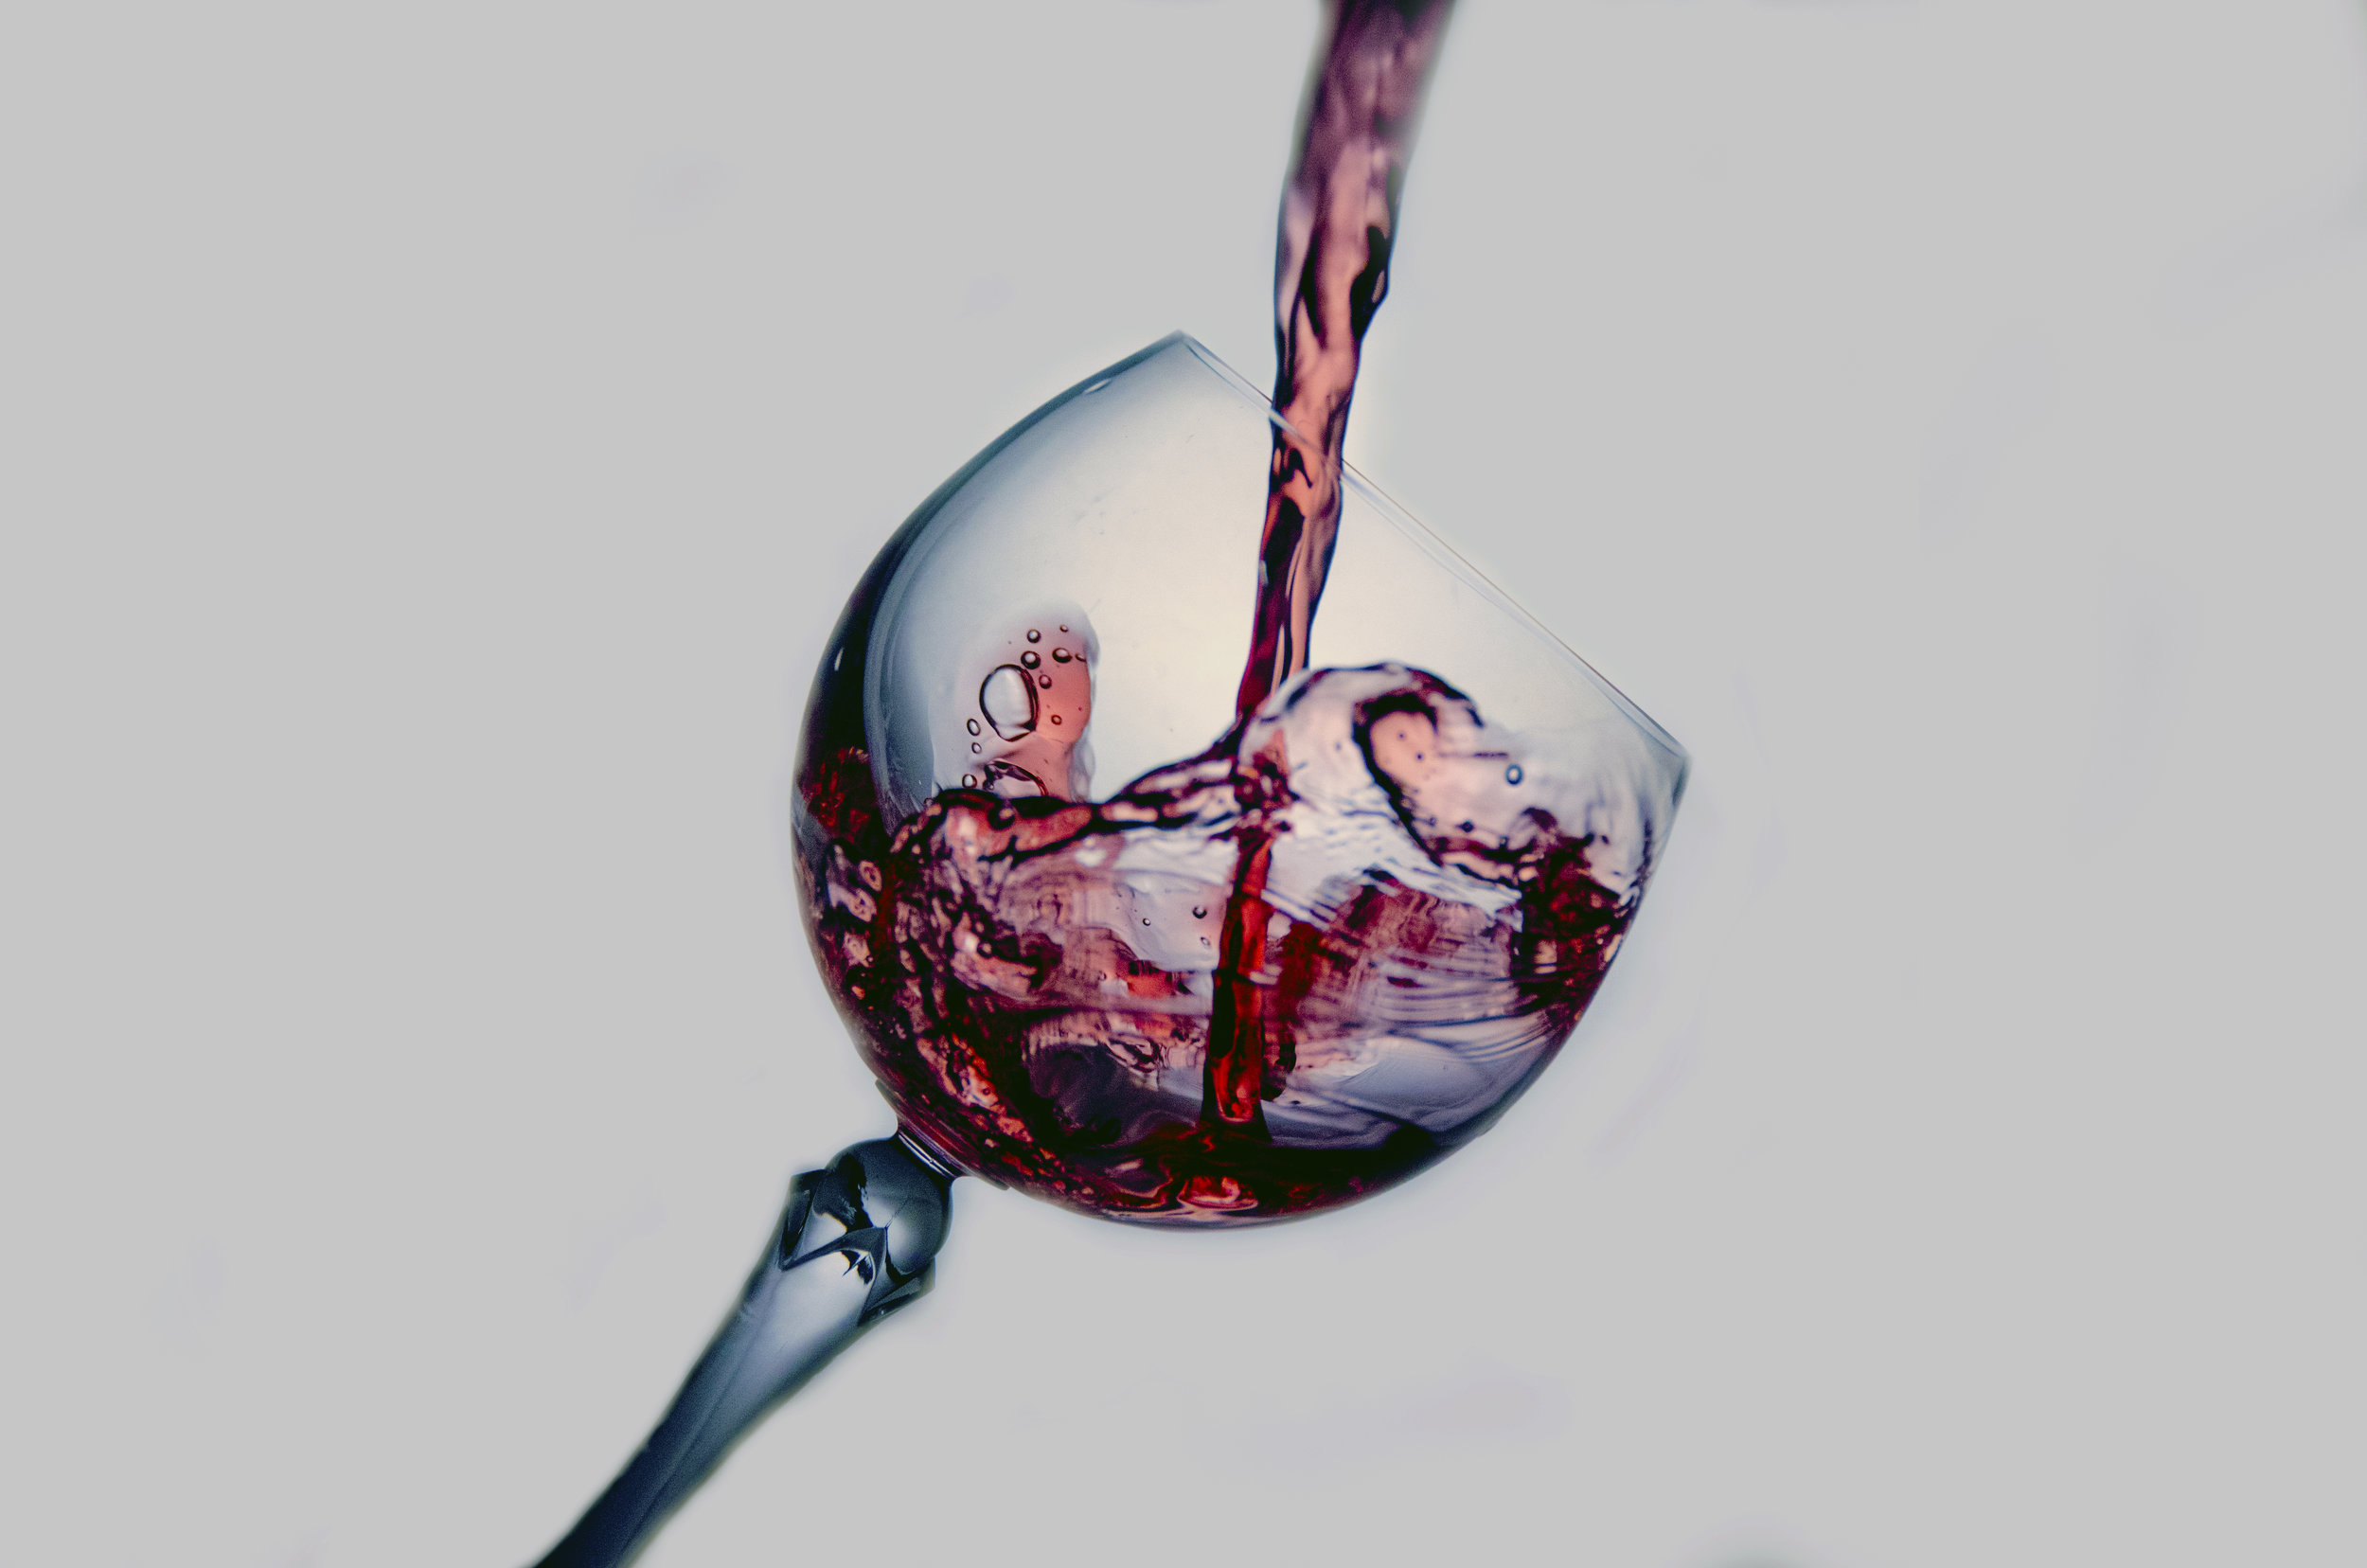 Take a look at our portfolio list to discover the worlds best wines, beers and spirits -